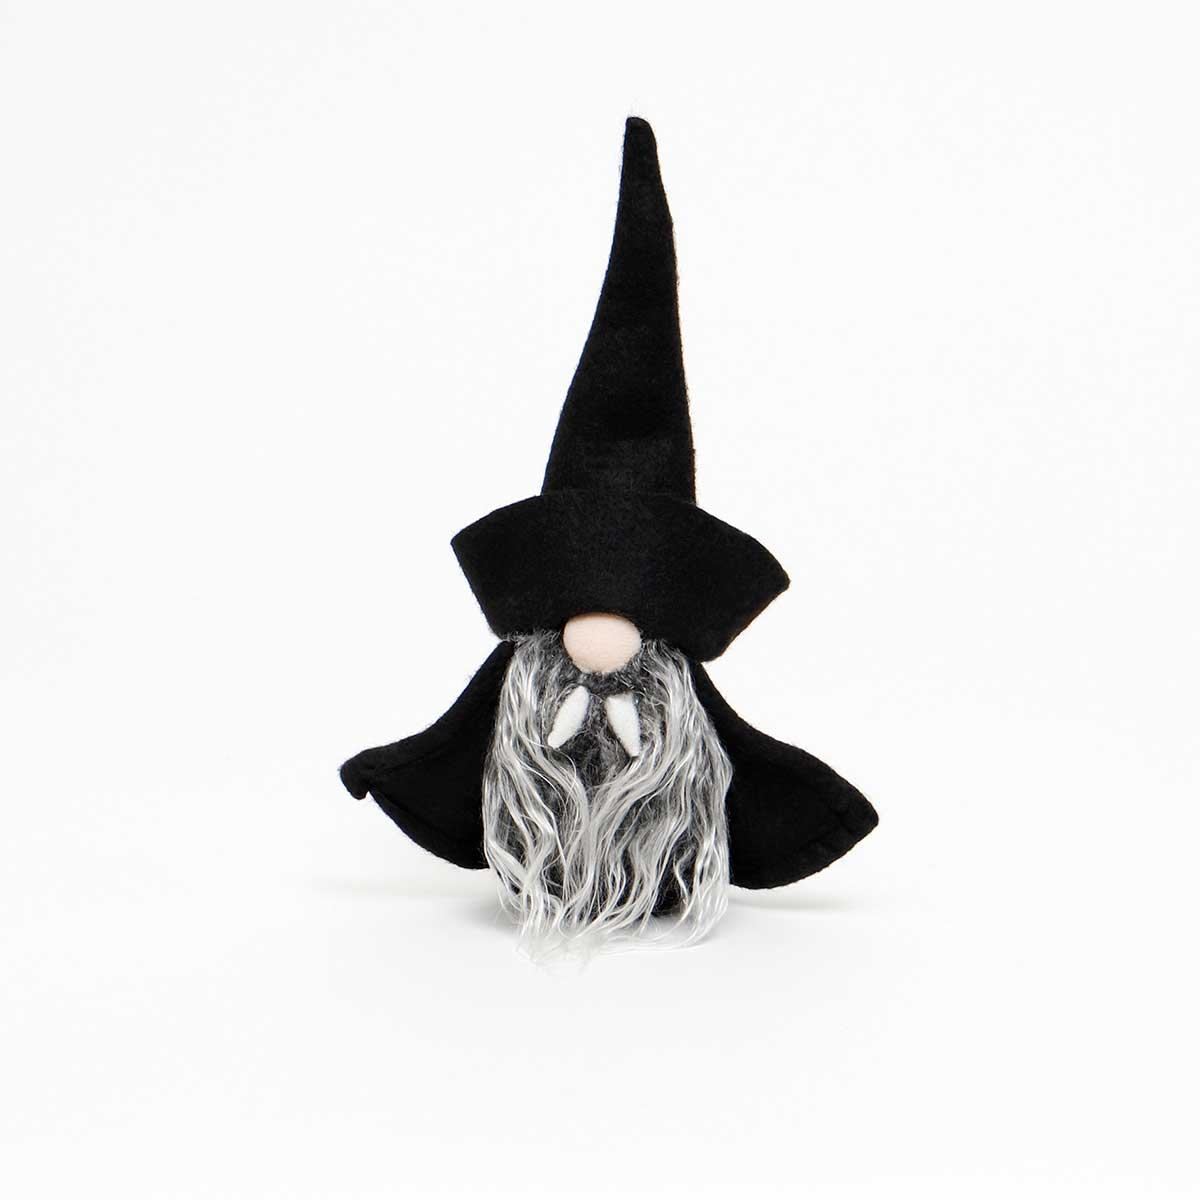 VLAD DRACULA GNOME WITH BLACK